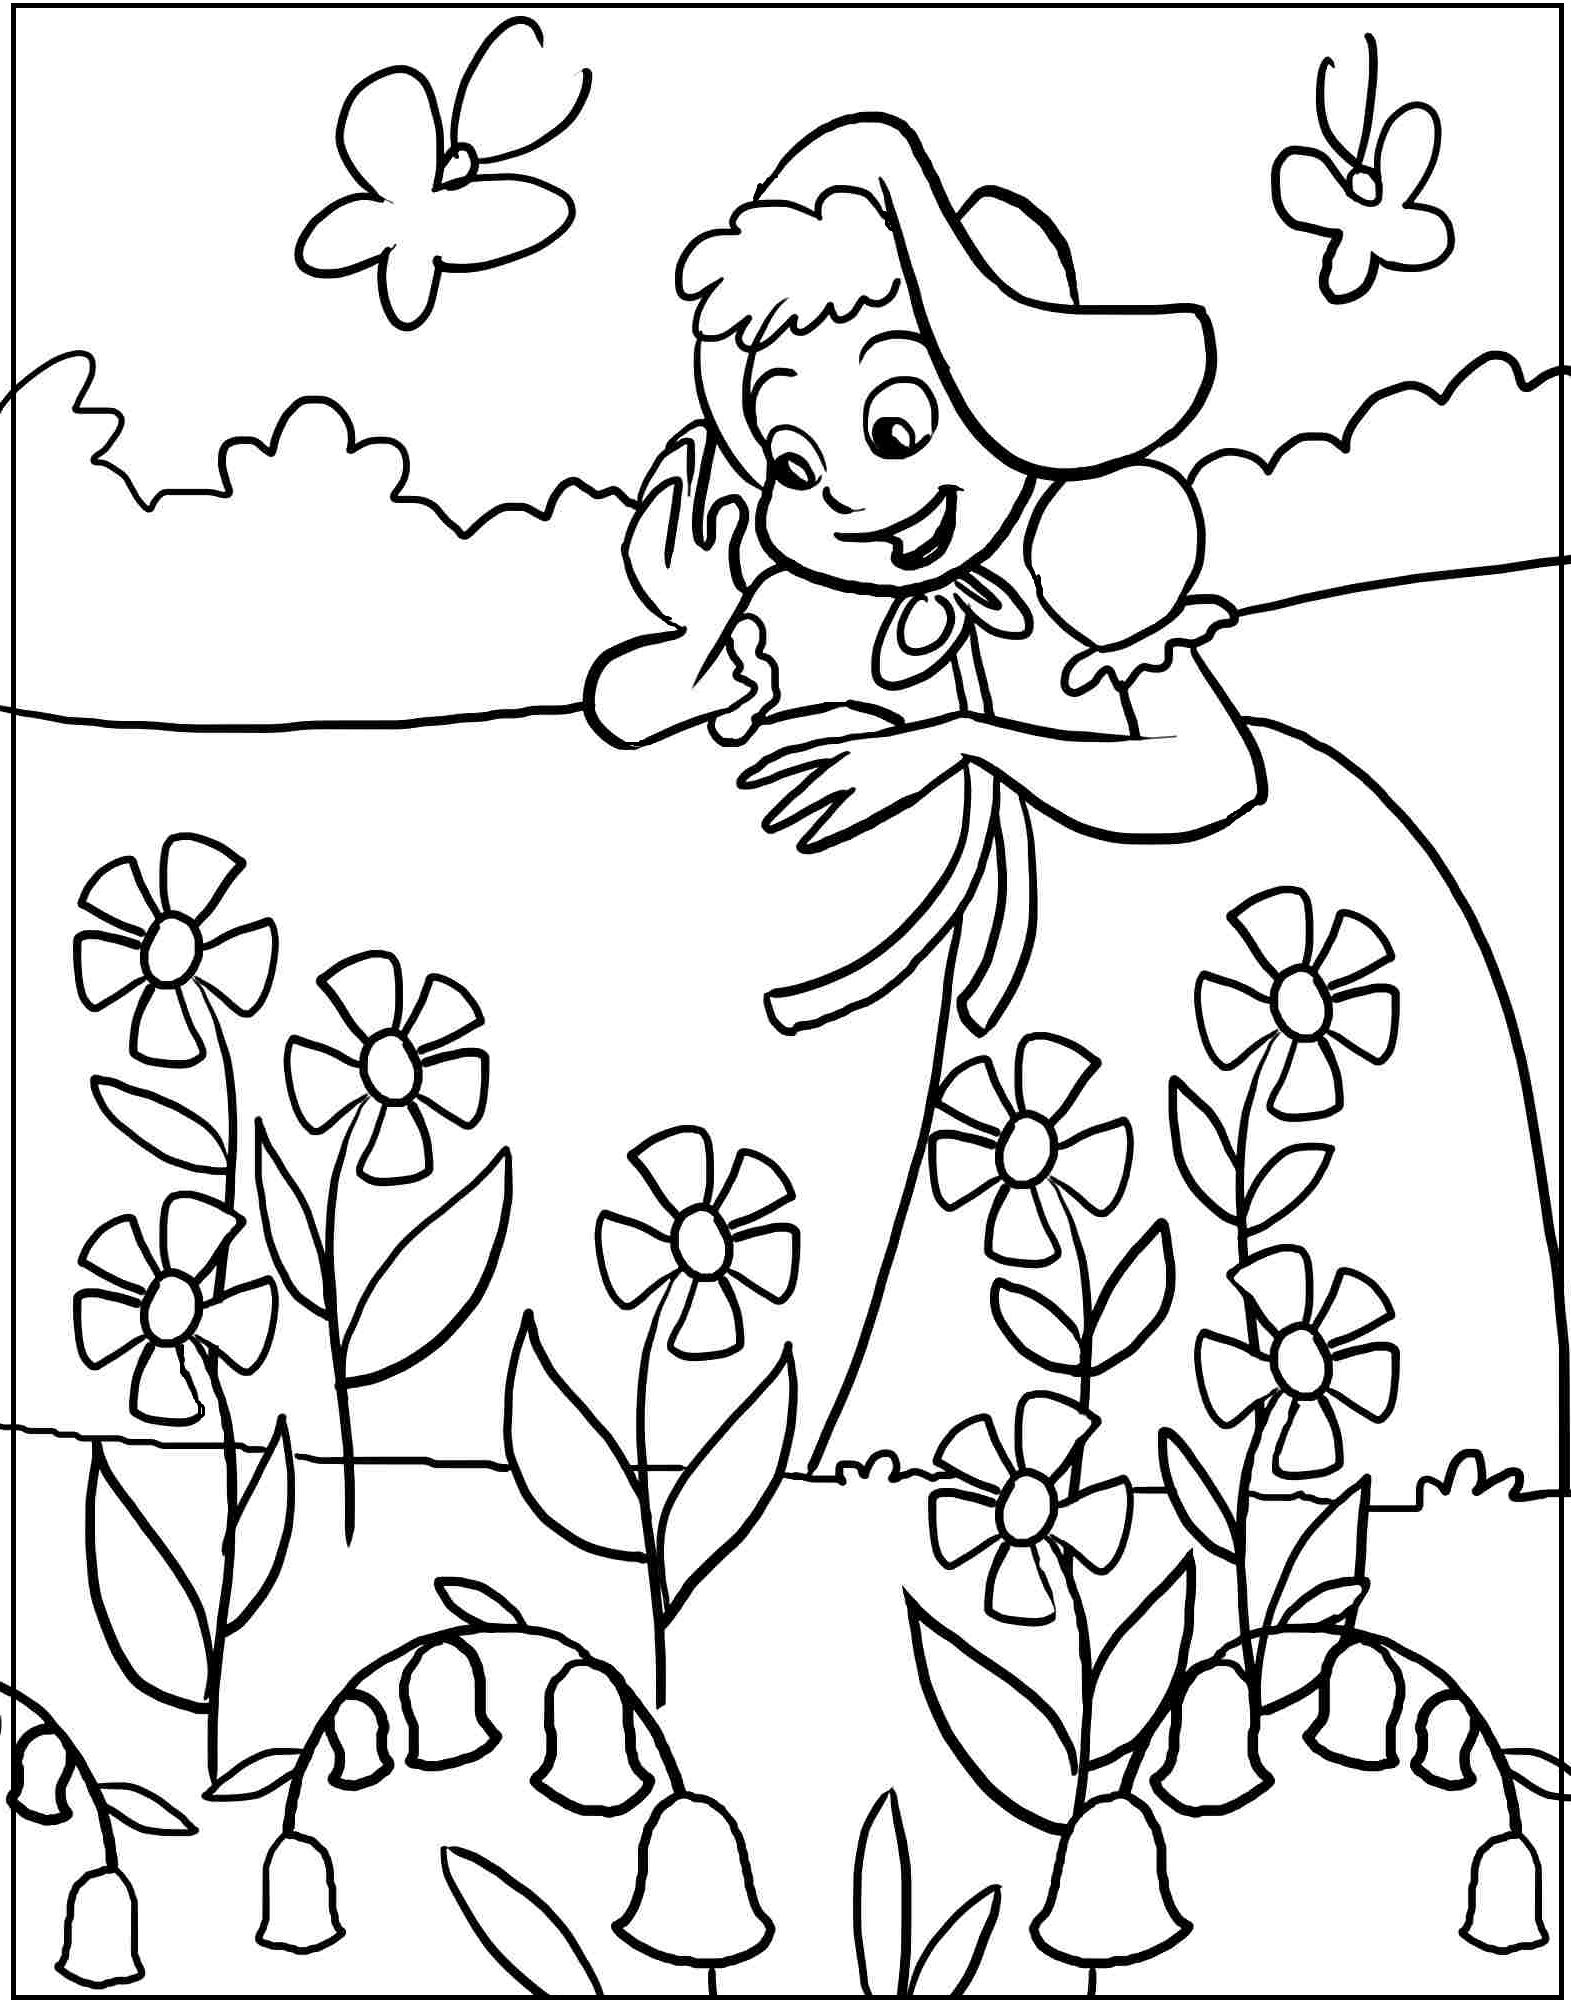 coloring pictures to color for kids zebra coloring pages free printable kids coloring pages pictures coloring kids for color to